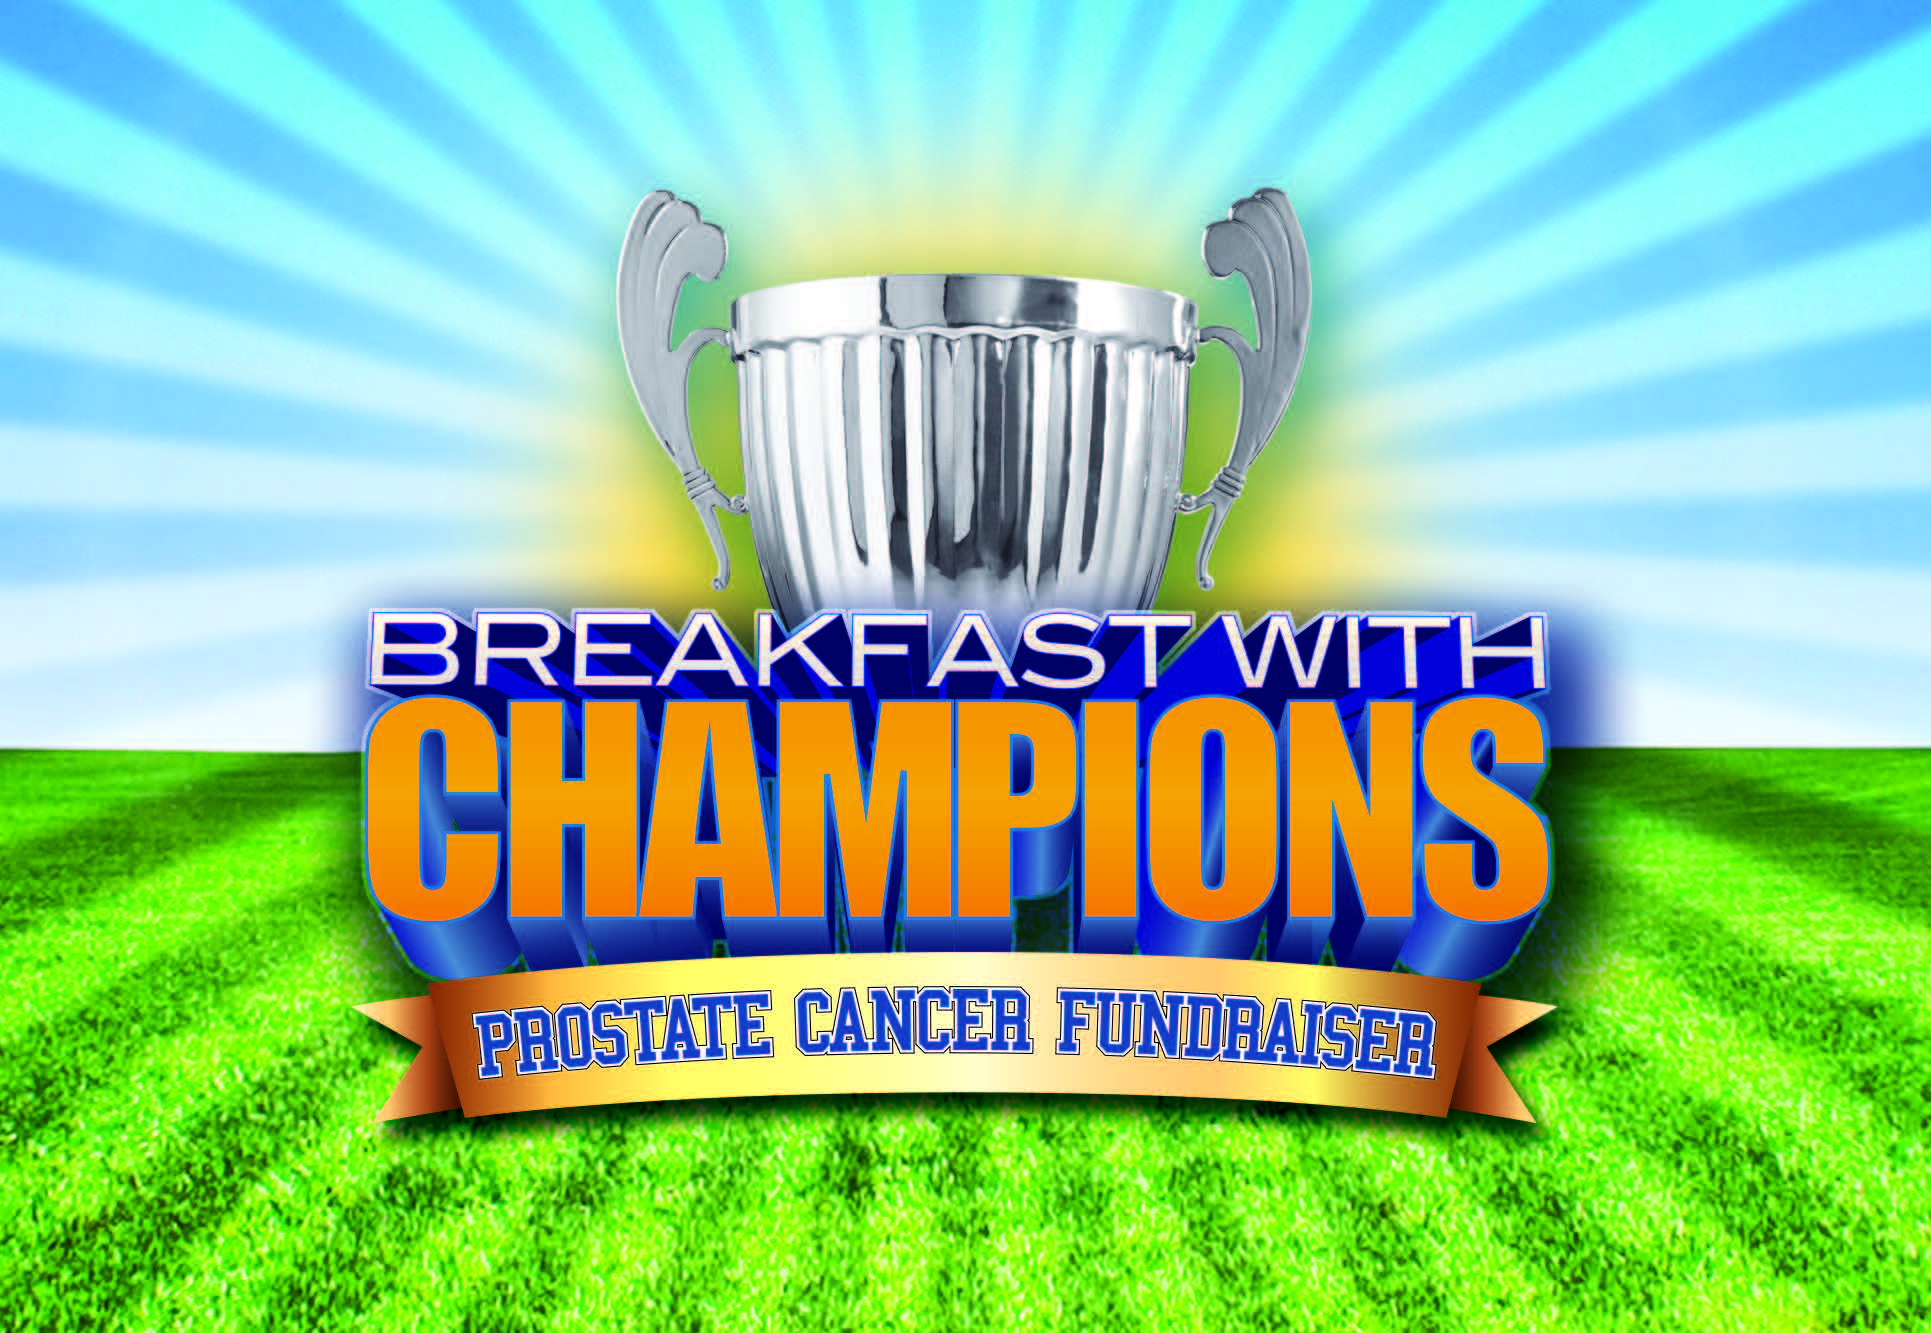 Breakfast with Champions - September 15, 2017